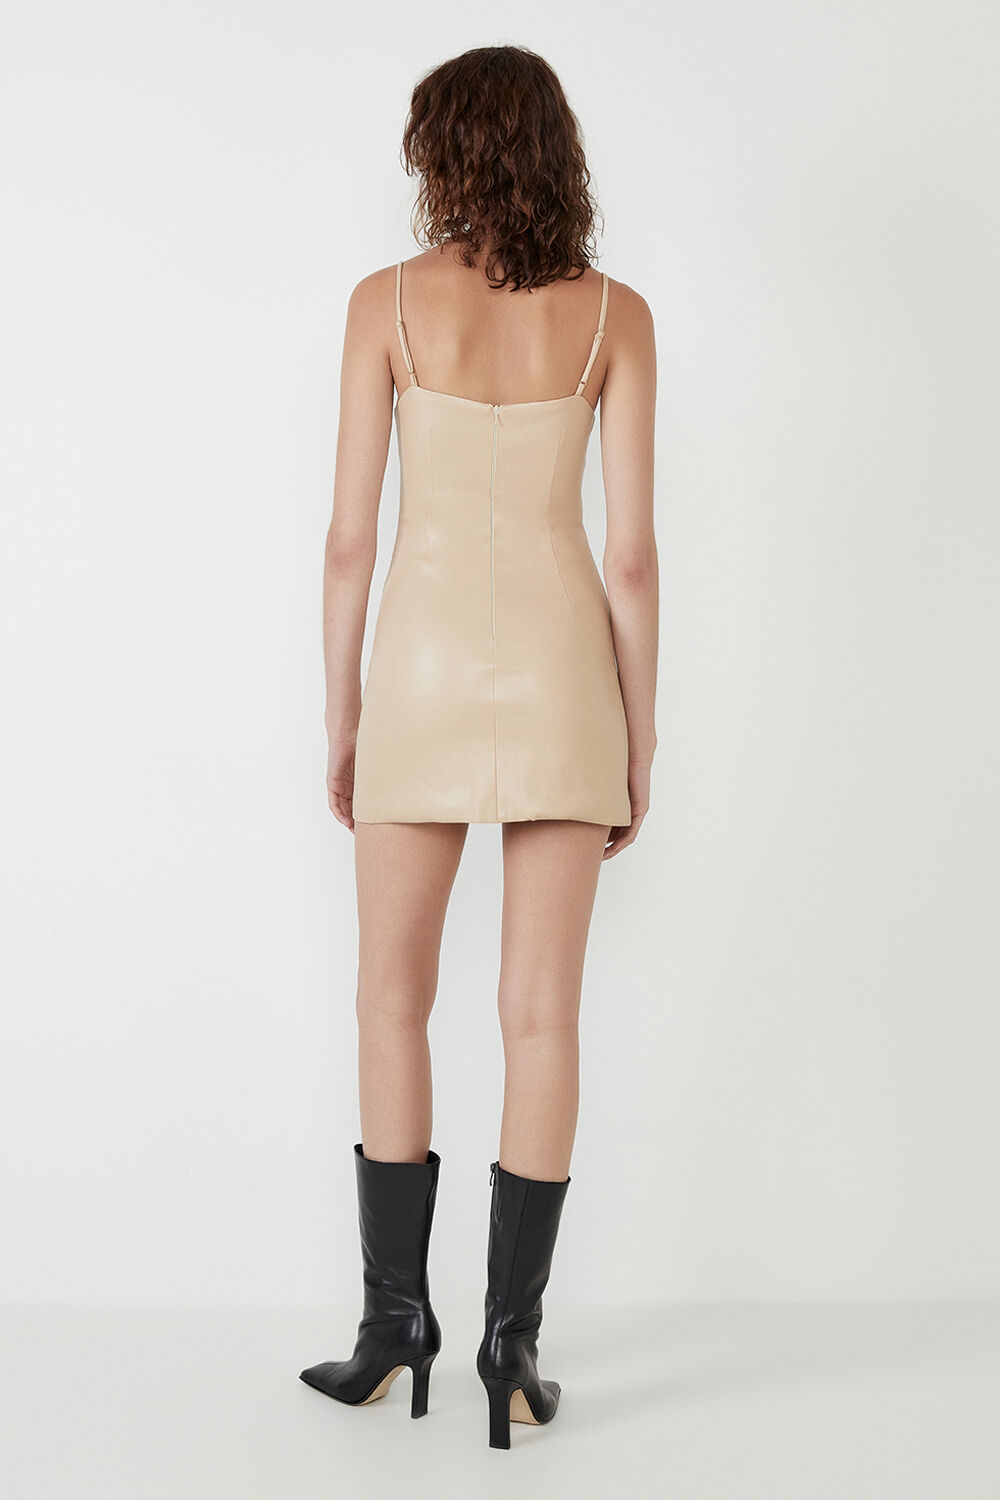 ANABELLE VEGAN LEATHER DRESS in colour MOONLIGHT